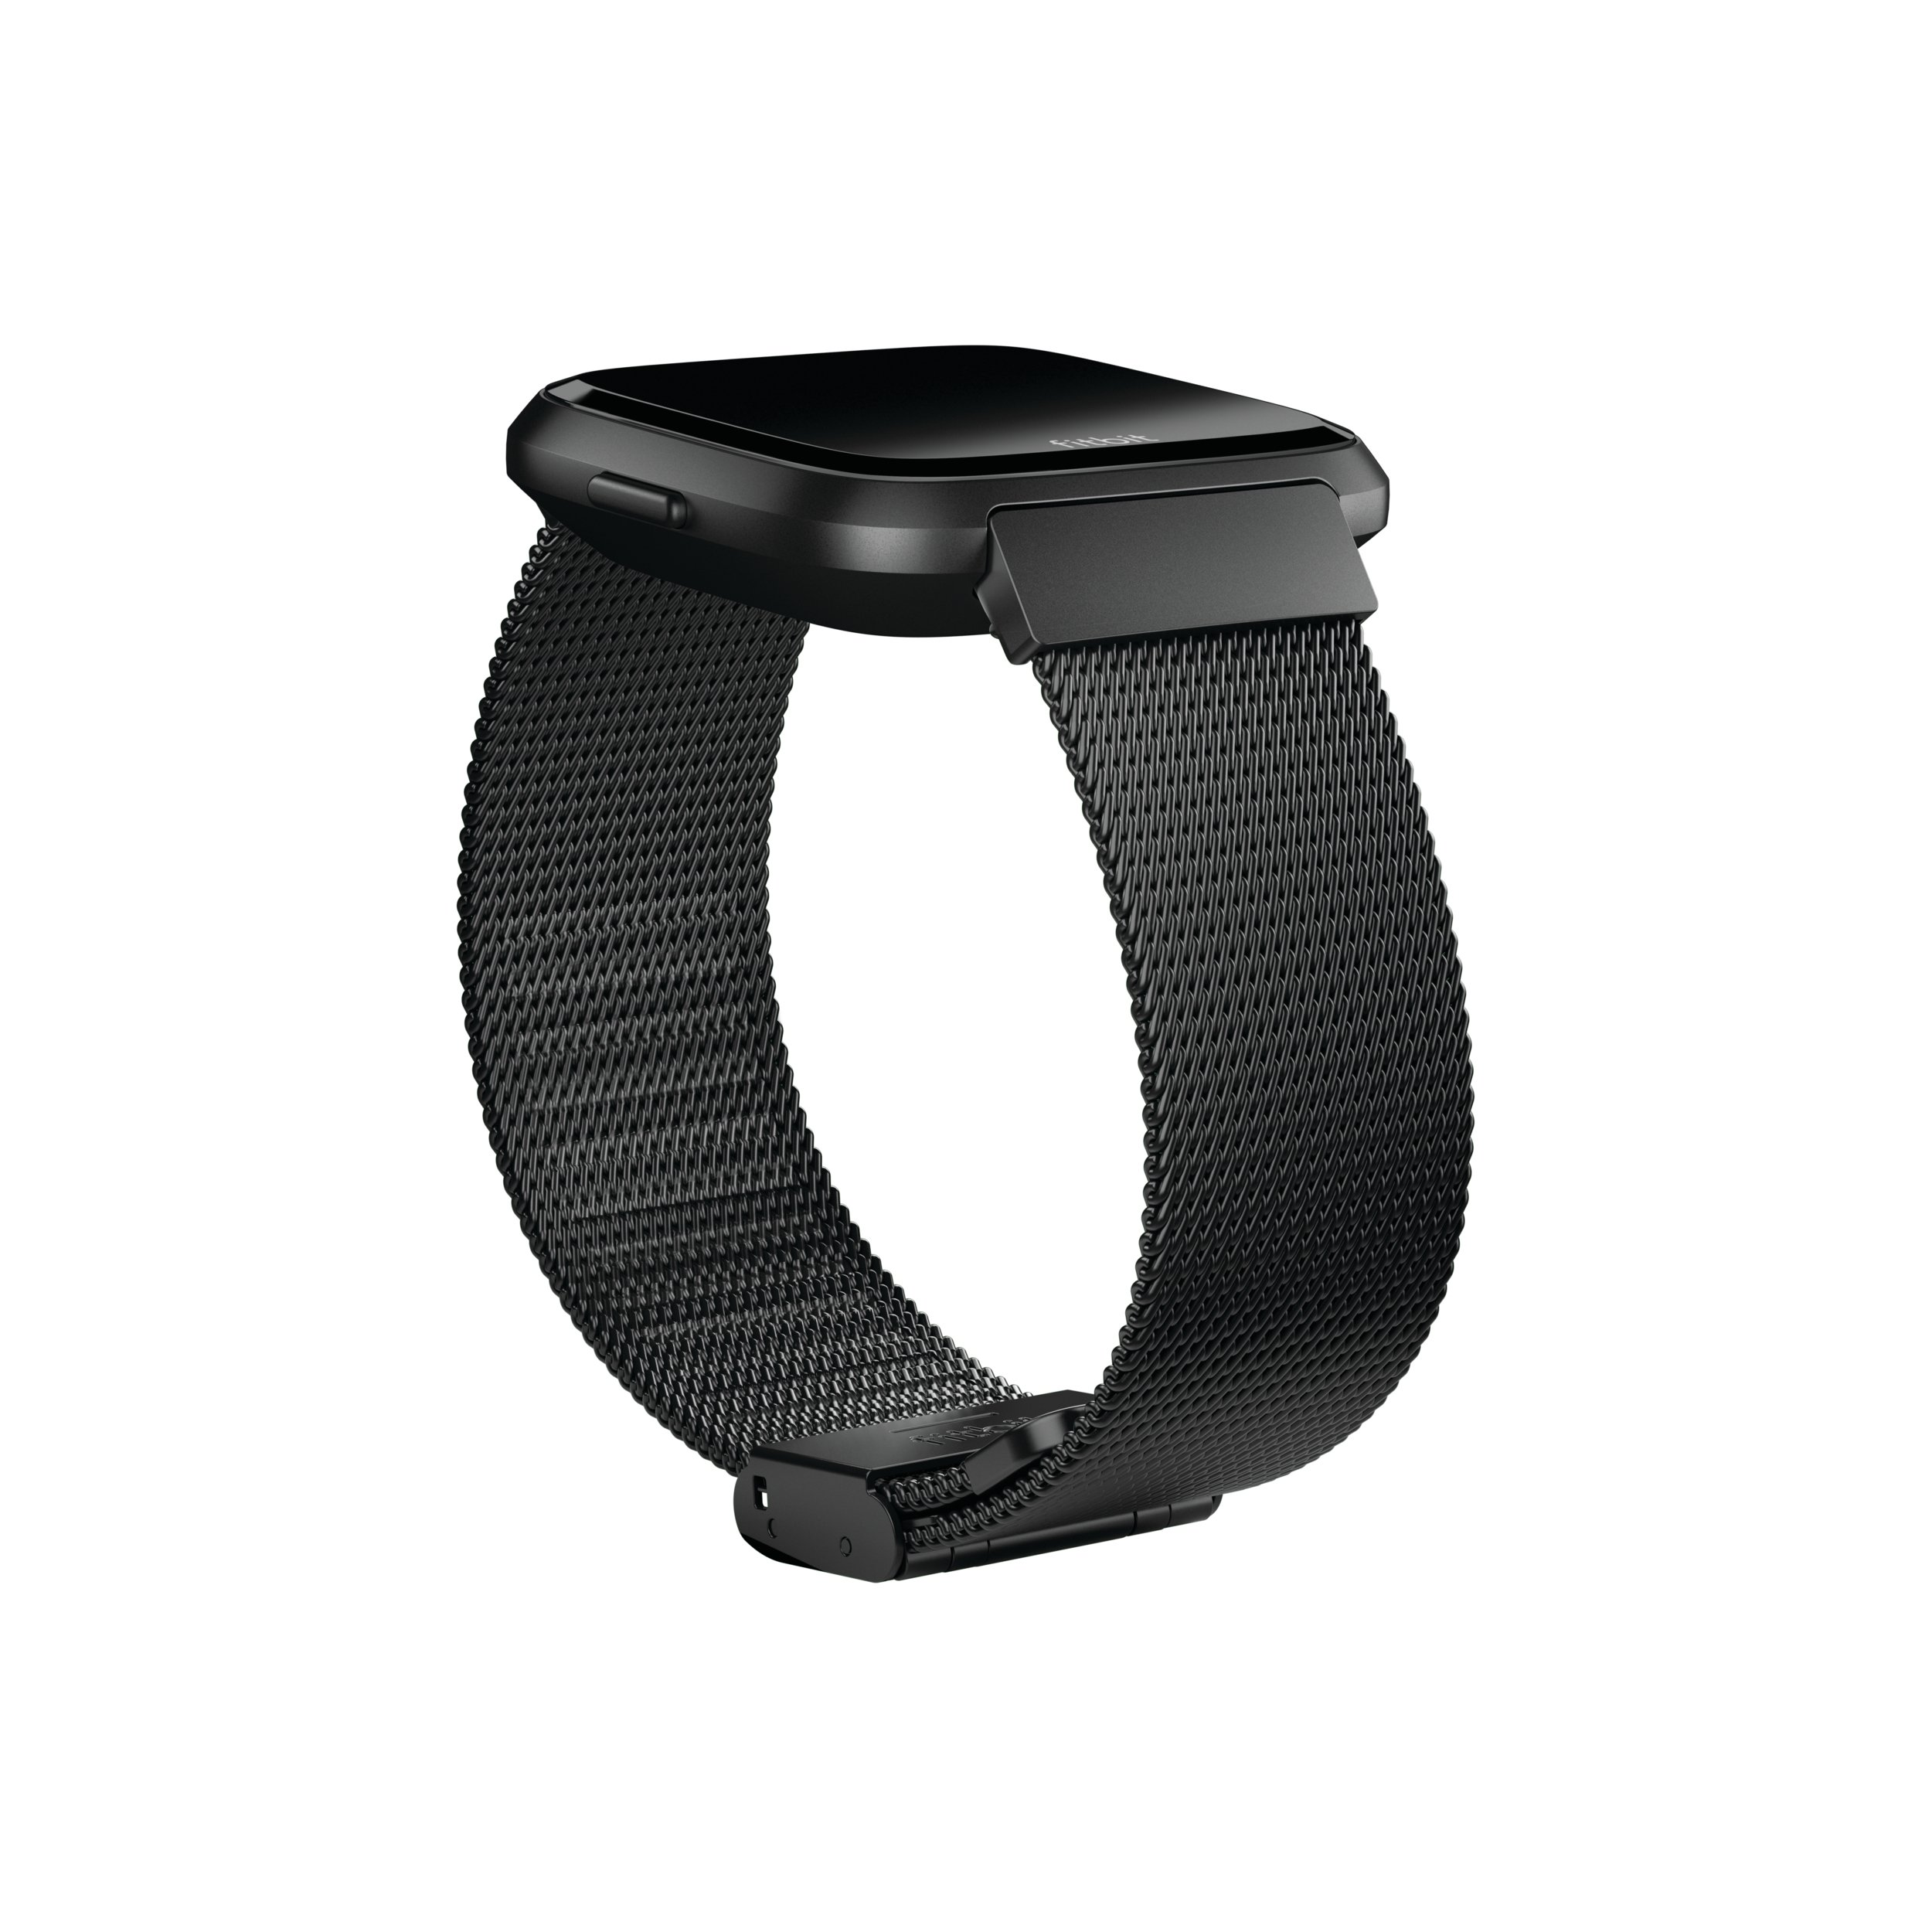 Fitbit Versa Family Accessory Band, Official Fitbit Product, Stainless Steel Mesh, Black, One Size by Fitbit (Image #2)